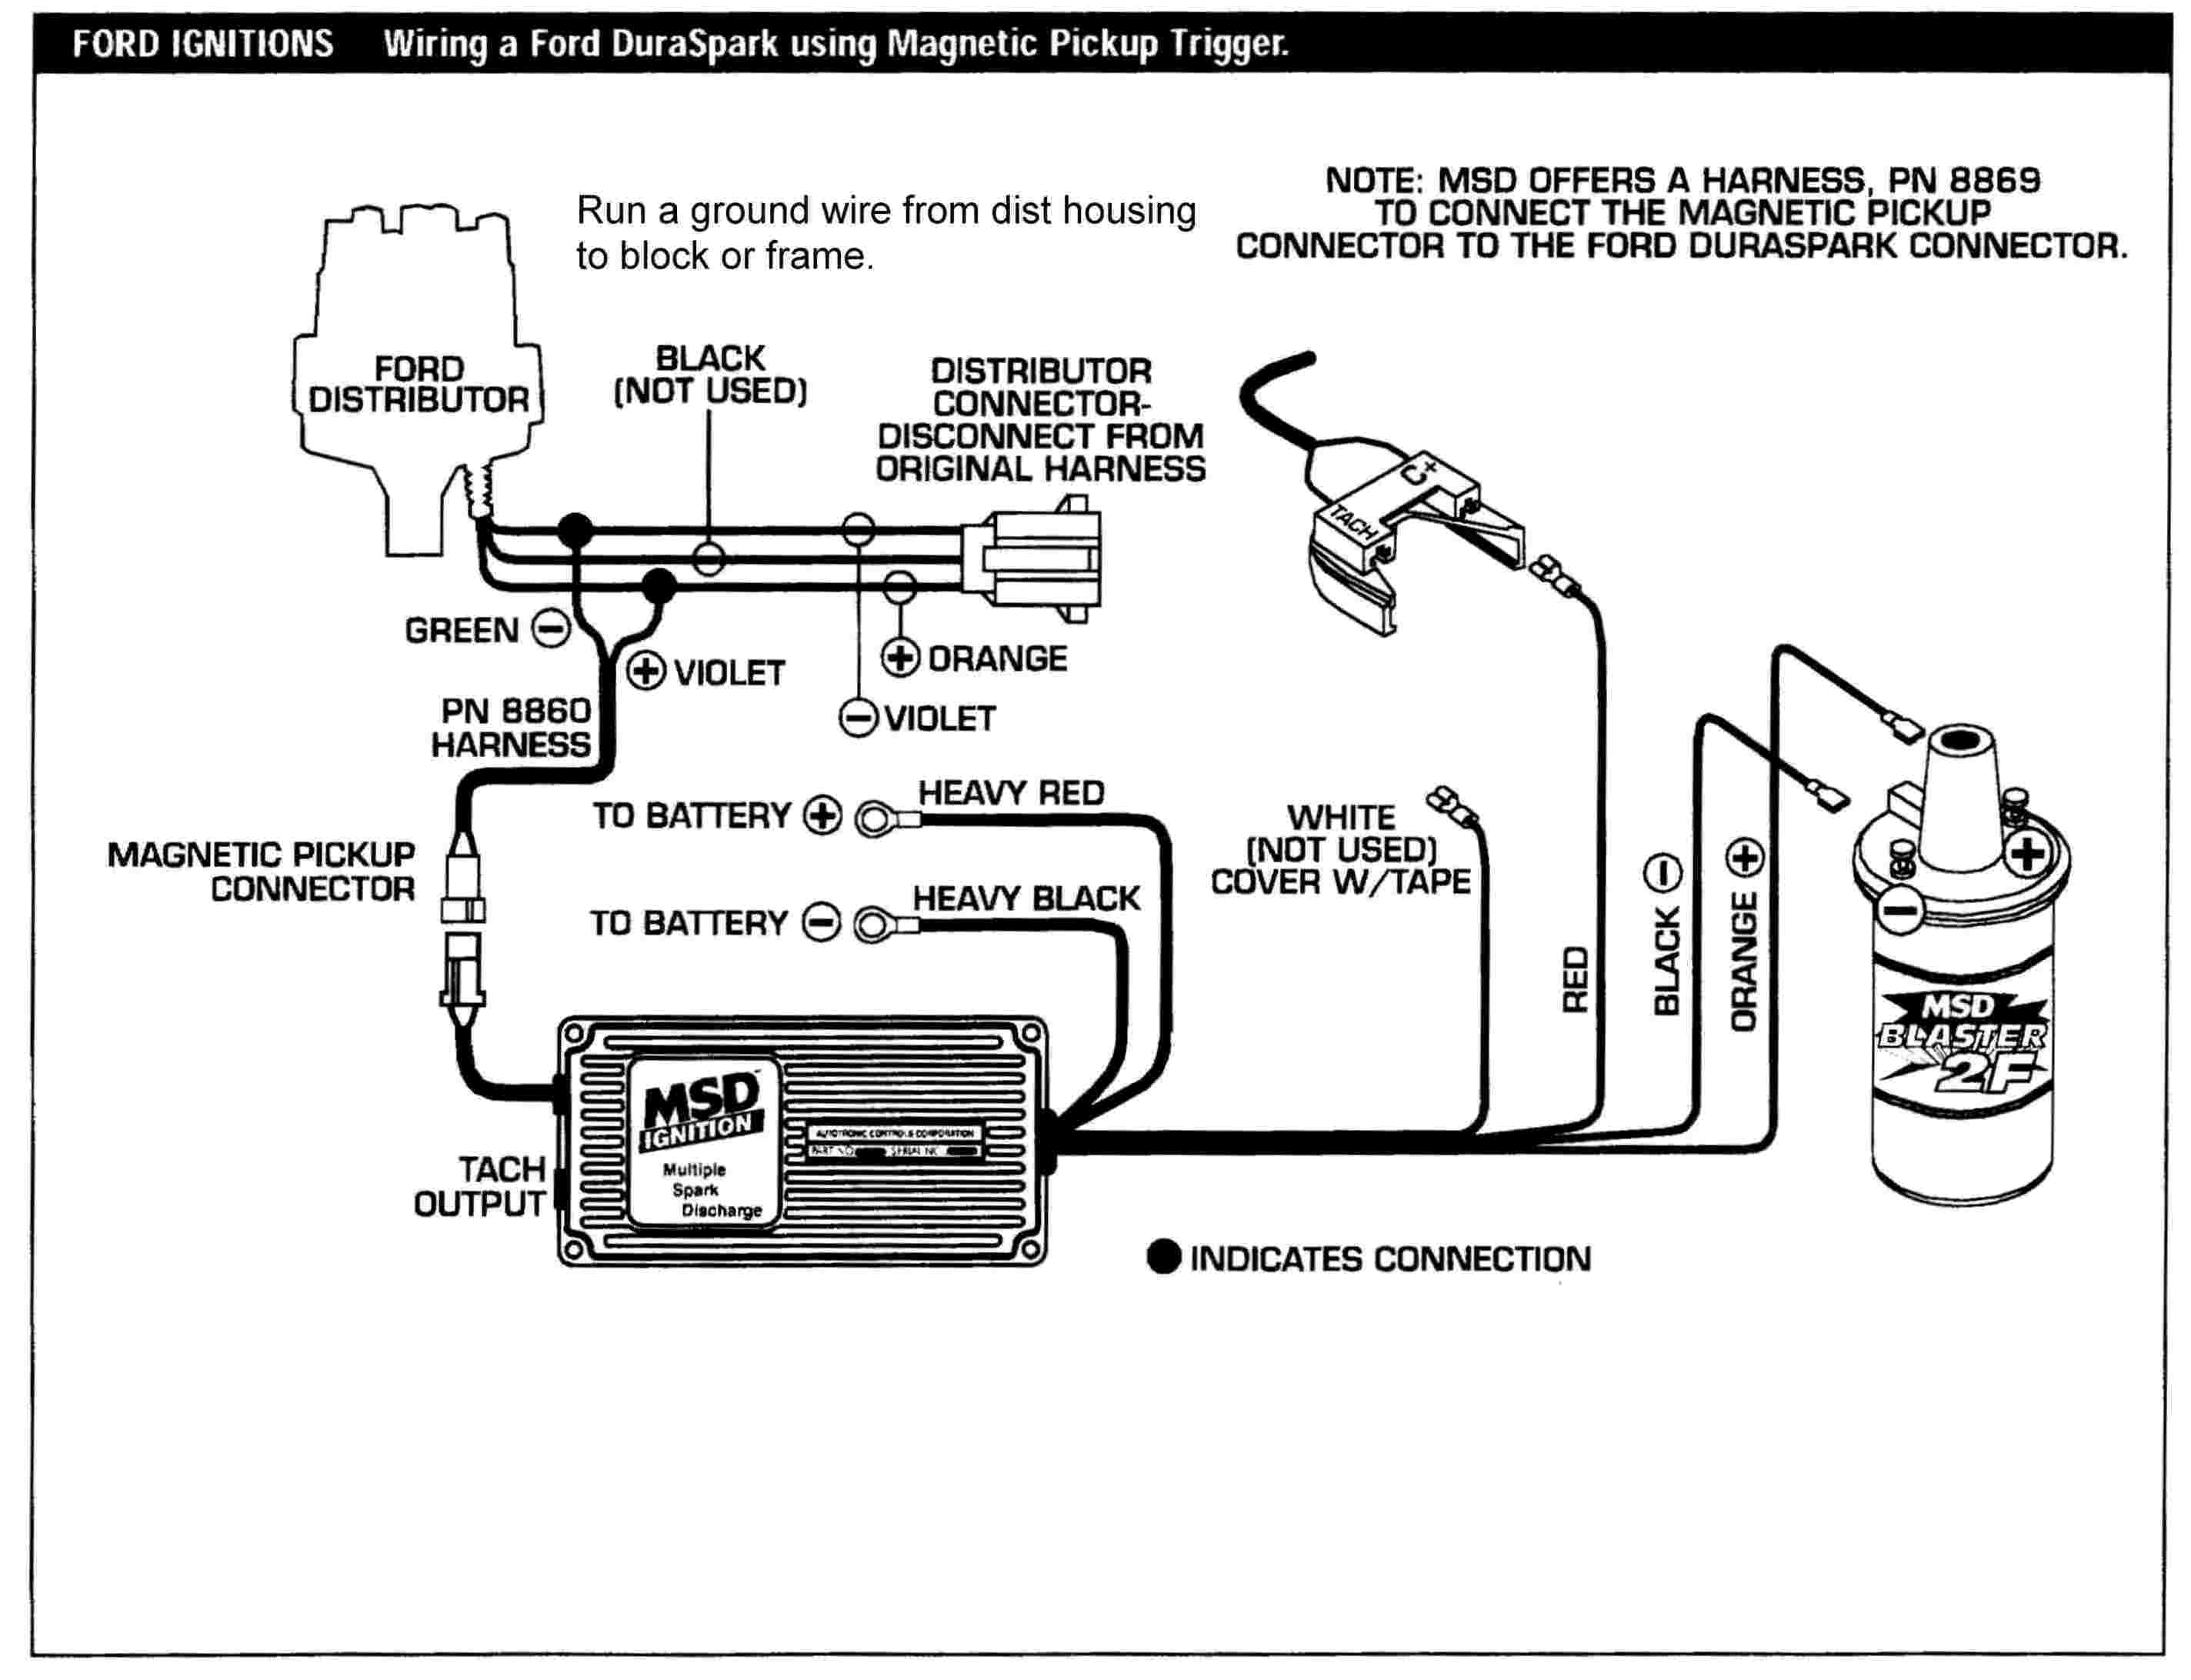 Msd Digital 6 Plus Wiring Diagram – Msd Digital 6 Plus Wiring ...